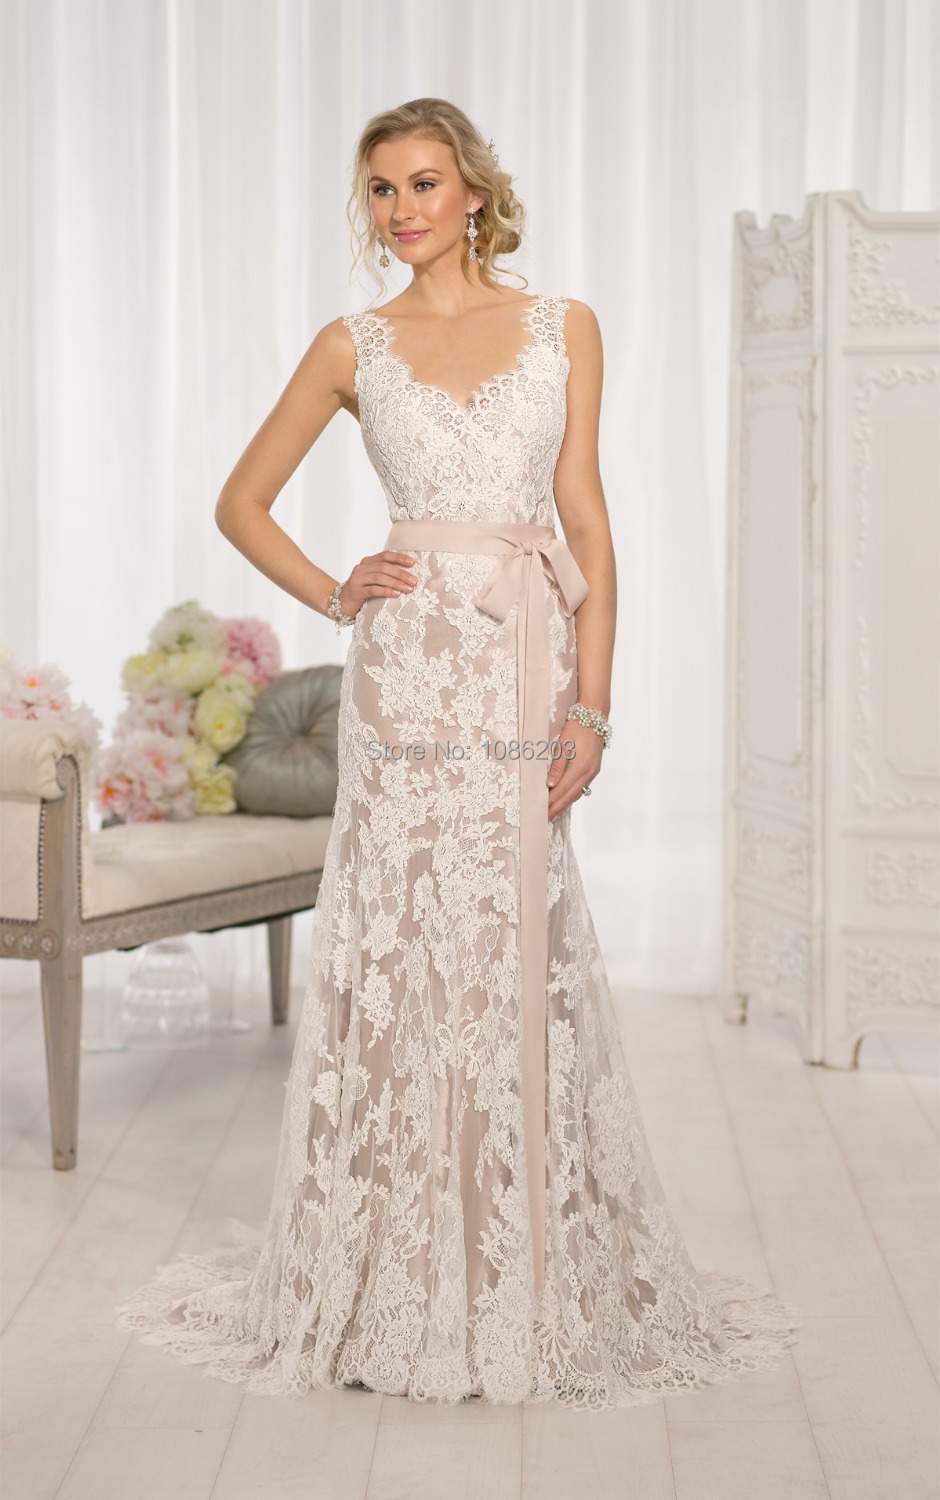 Elegant Custom 2017 New Strapless Wedding Dresses Pink Lace Lique Sequins A Line Bow Gown Train In From Weddings Events